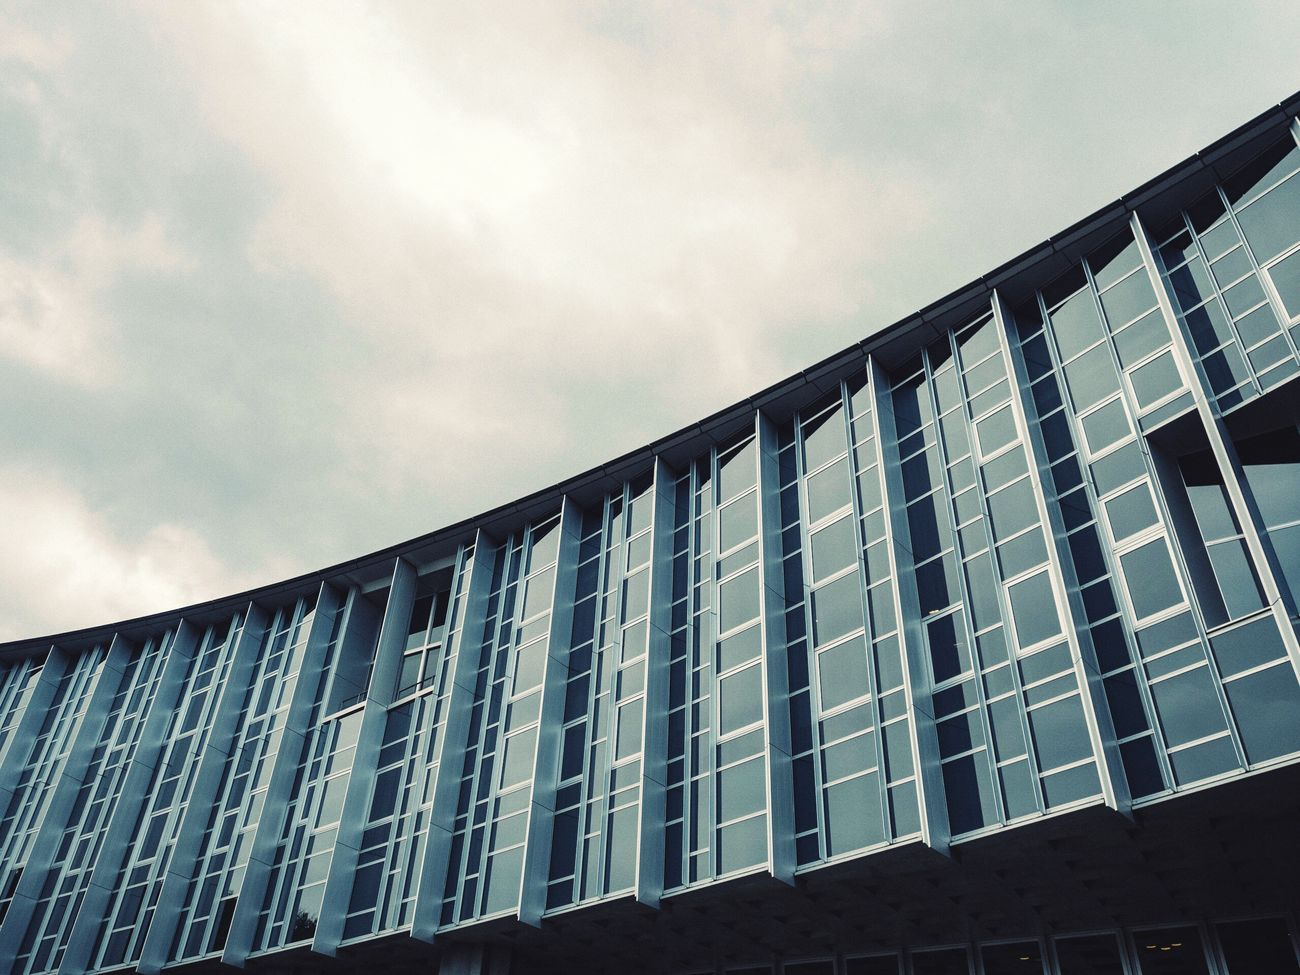 Miyagi University Architecture Architecture_collection Building Exterior Built Structure Modern Architecture Low Angle View Capture The Moment Travel Photography From My Point Of View Modern Architecture Façade Windows Sky And Building Buildings & Sky Lookingup